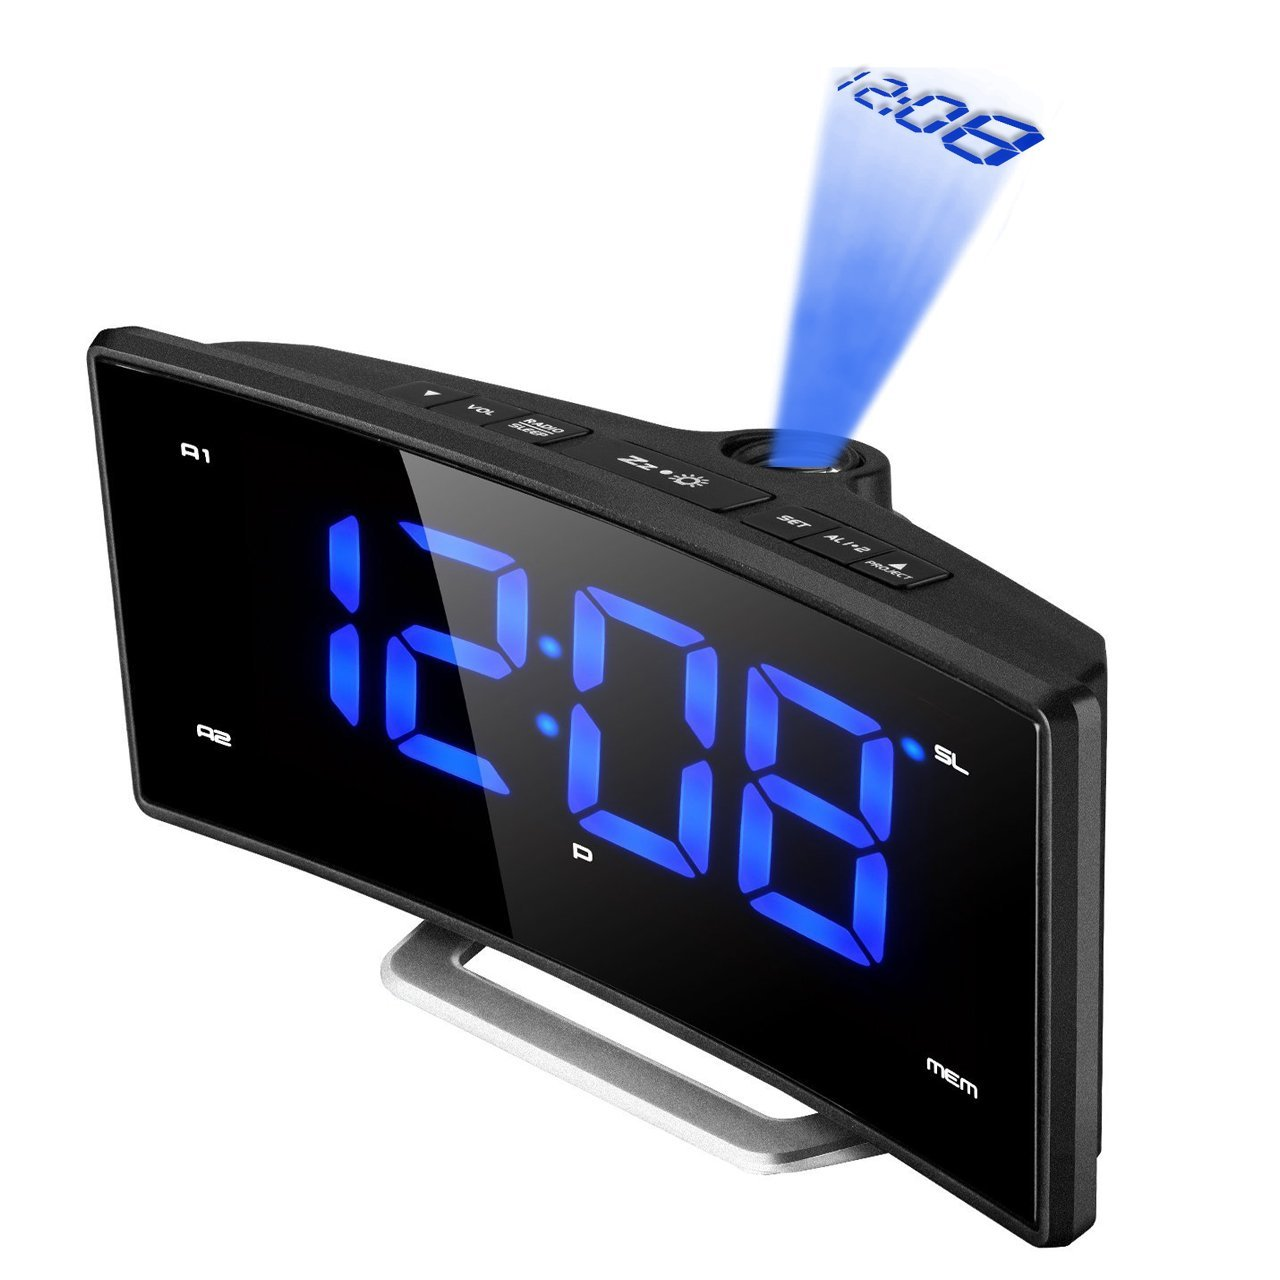 Projection Alarm Clock, (New Version) Pictek FM Radio Digital Ceiling Clock with Dual Alarms and Snooze Function, (12/24 Hour) 2-inch Large LED Dimmable Display Clocks with Adjustable Brightness YTGEHM074ABUS-CAAE2